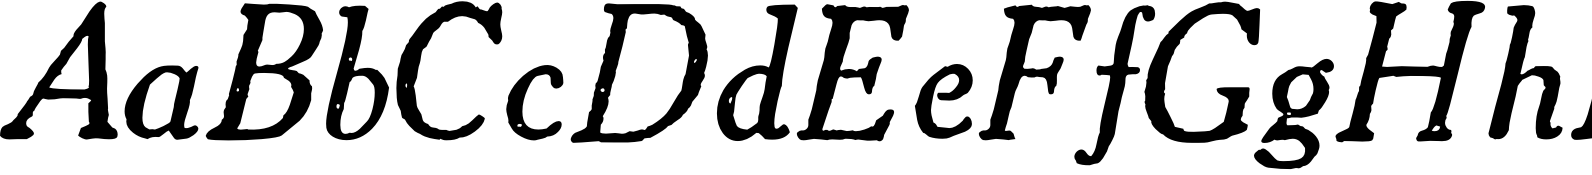 1906 French News Italic Font